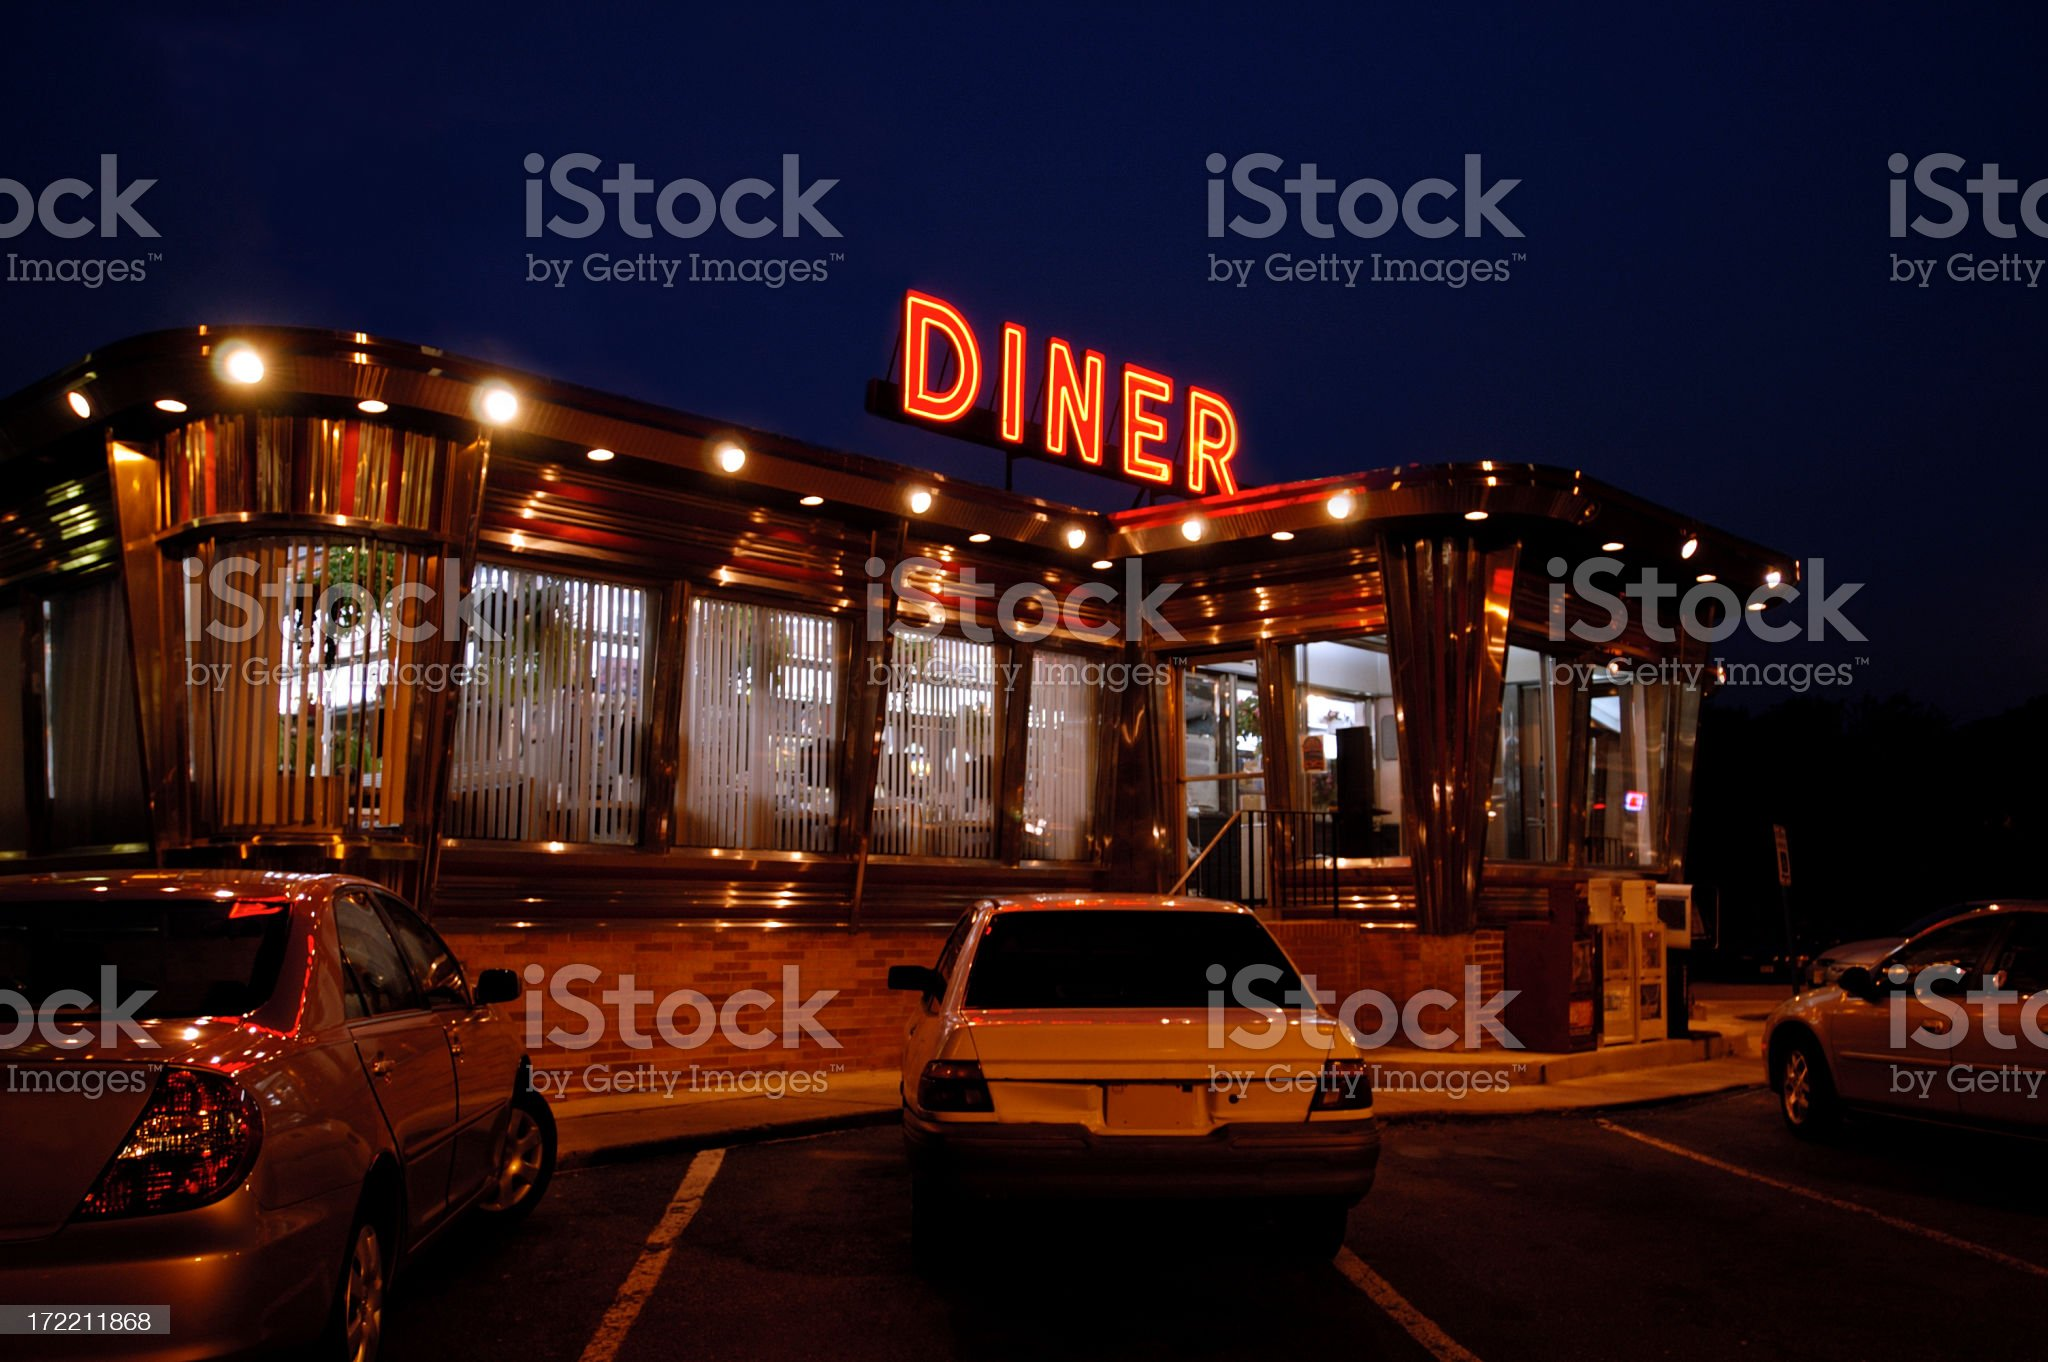 diner-at night royalty-free stock photo